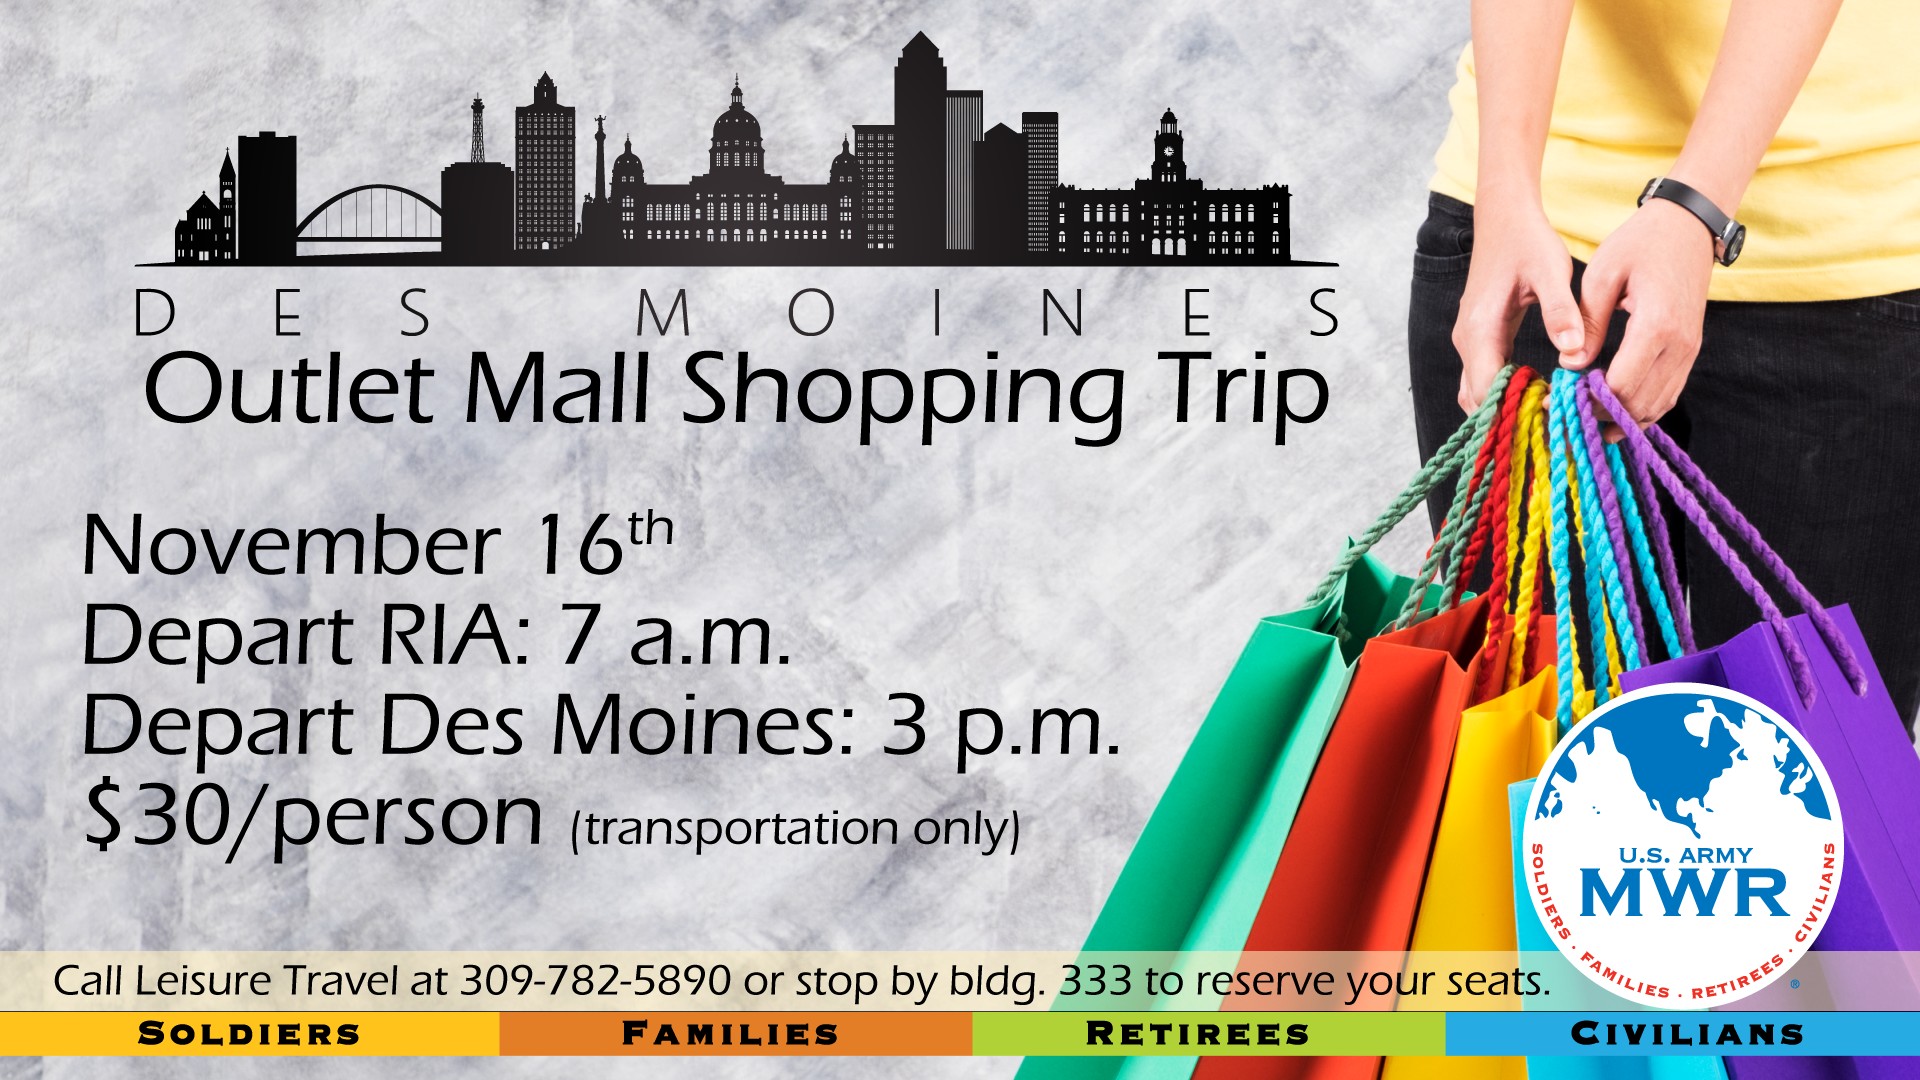 Trip to Des Moines Outlet Malls